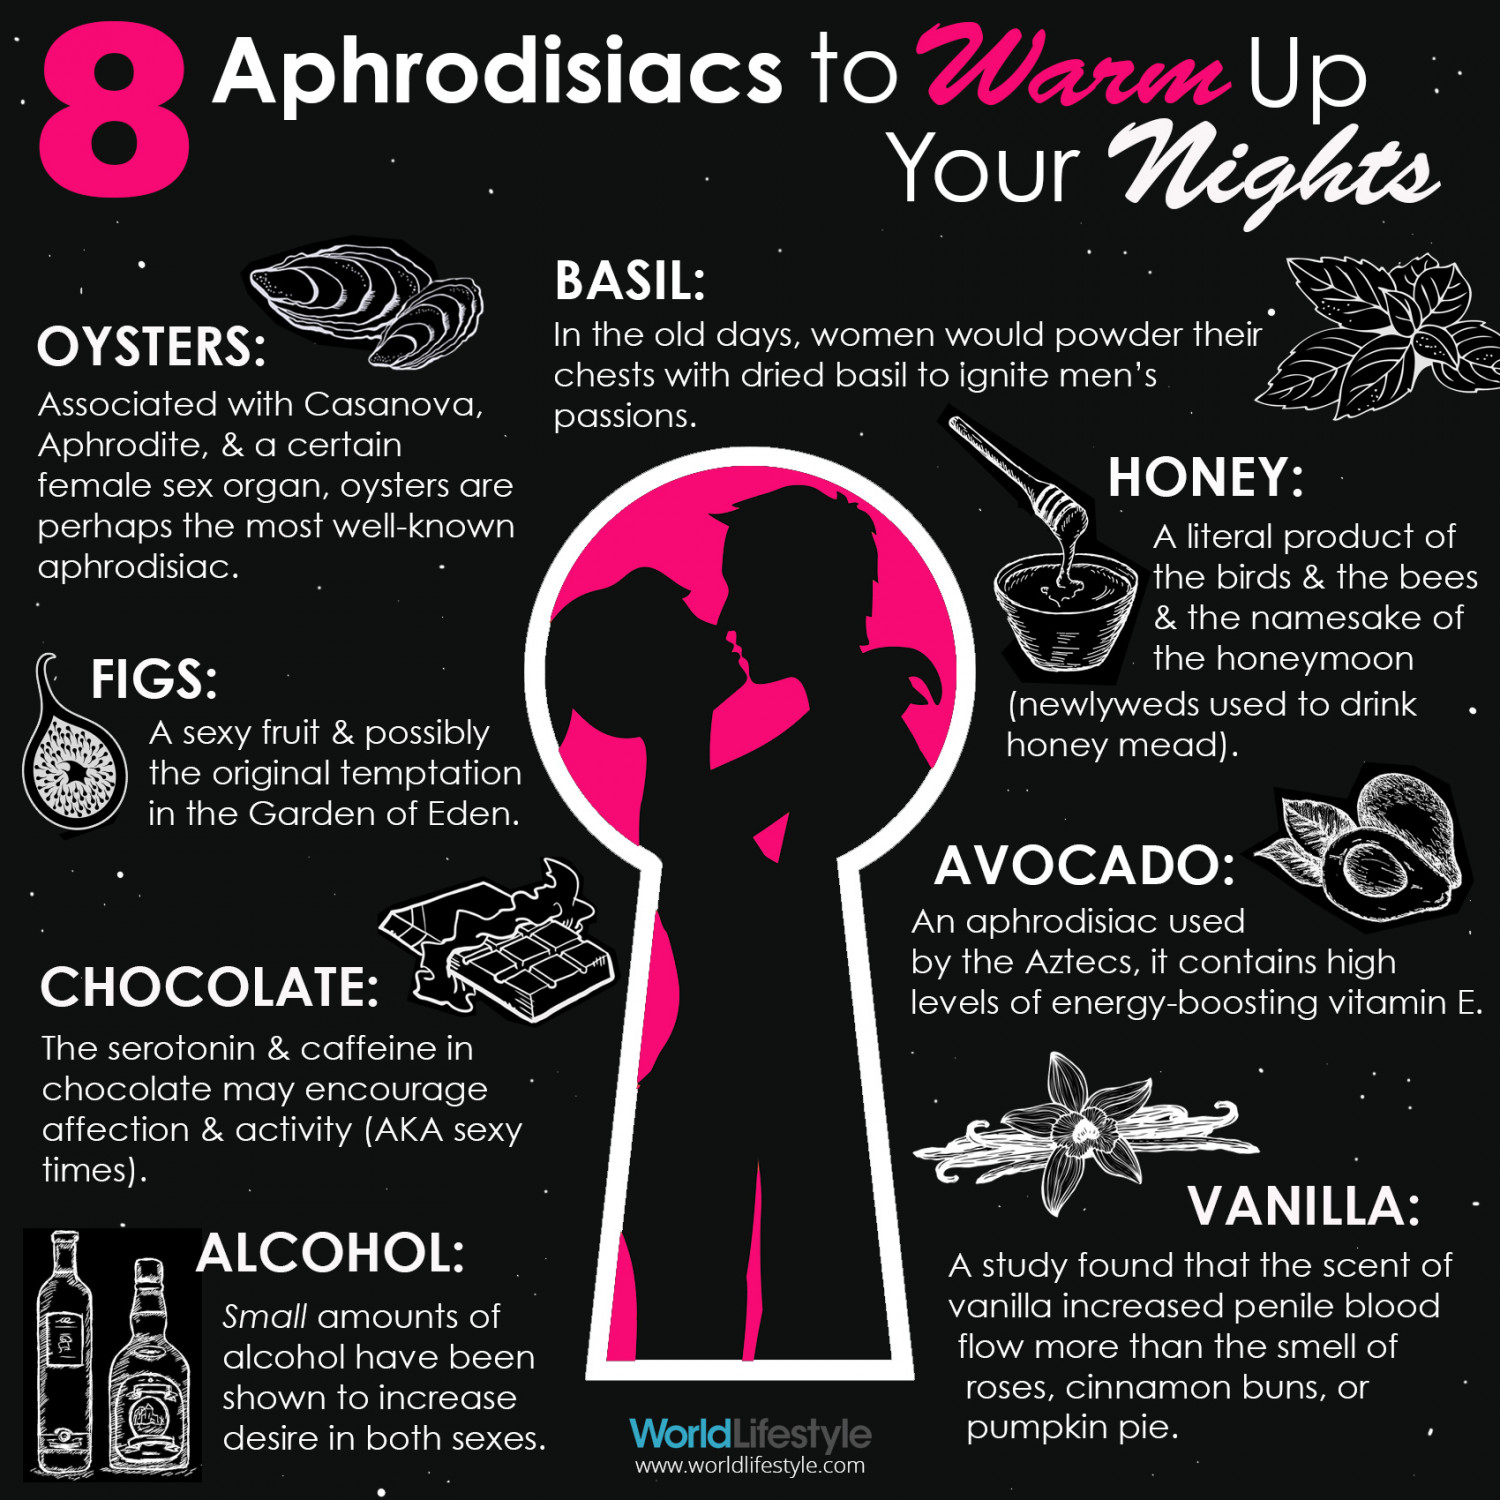 8 Aphrodisiacs to Warm Up Your Nights Infographic